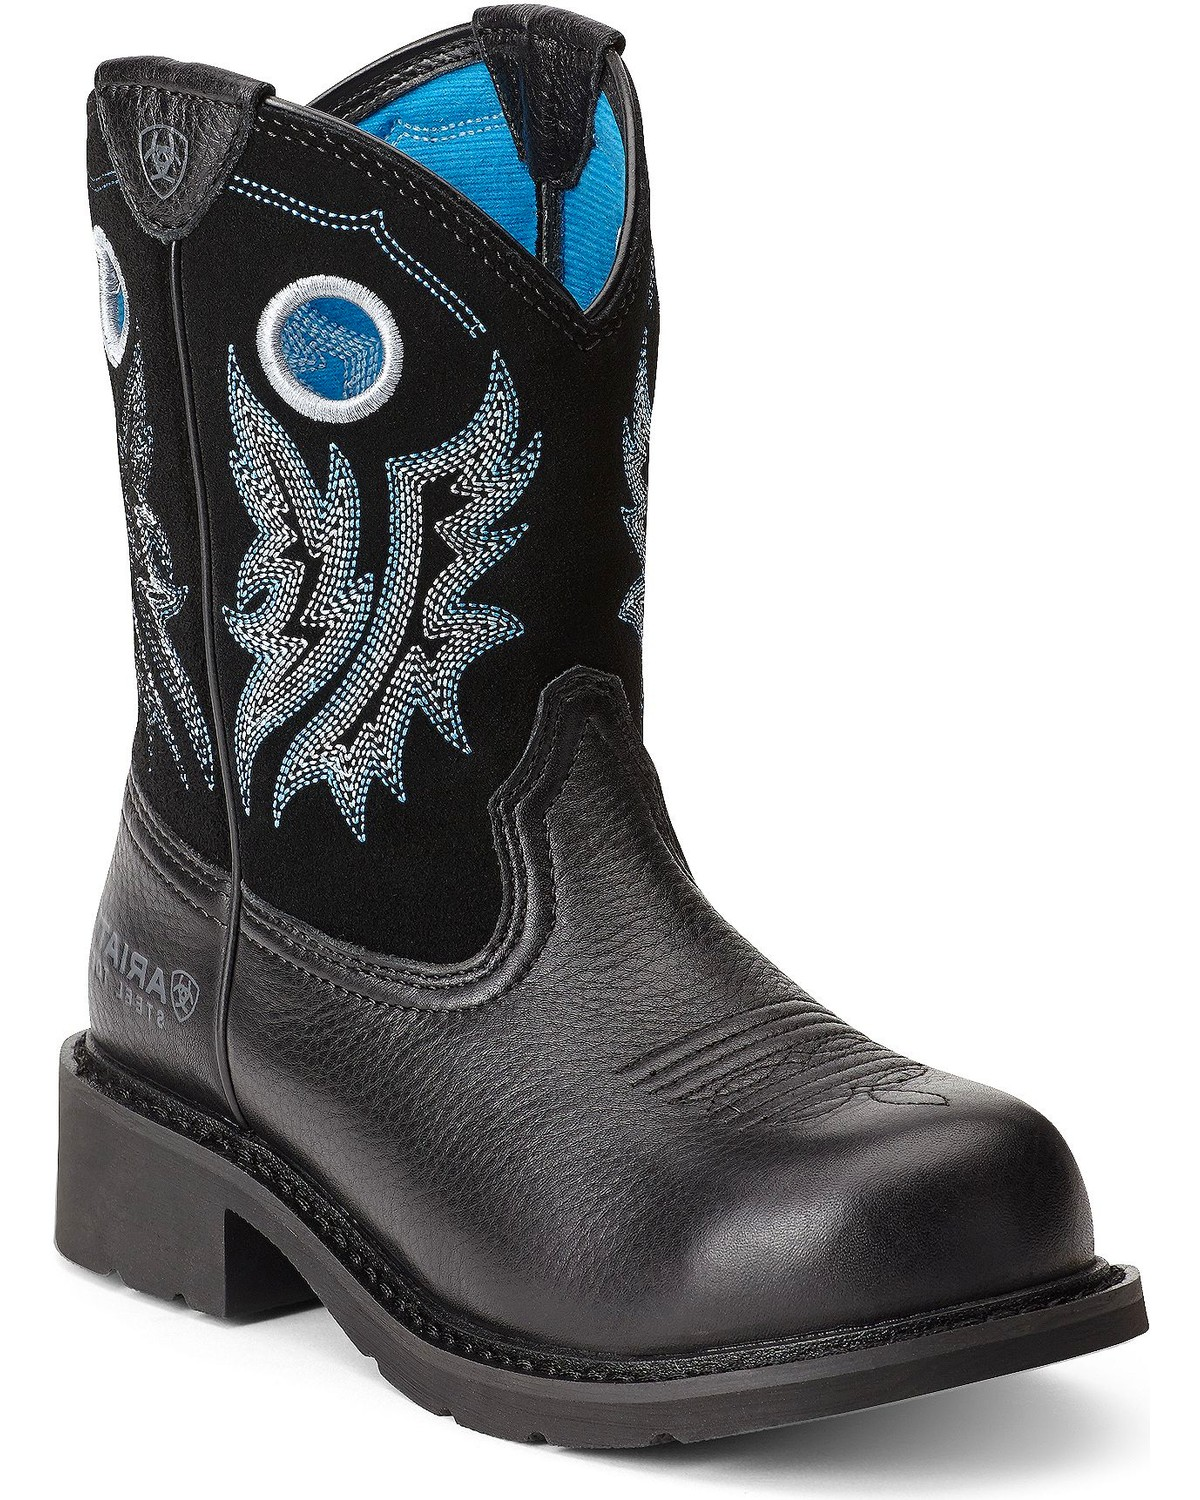 Ariat Women39s Fatbaby Cowgirl Steel Toe Western Boots